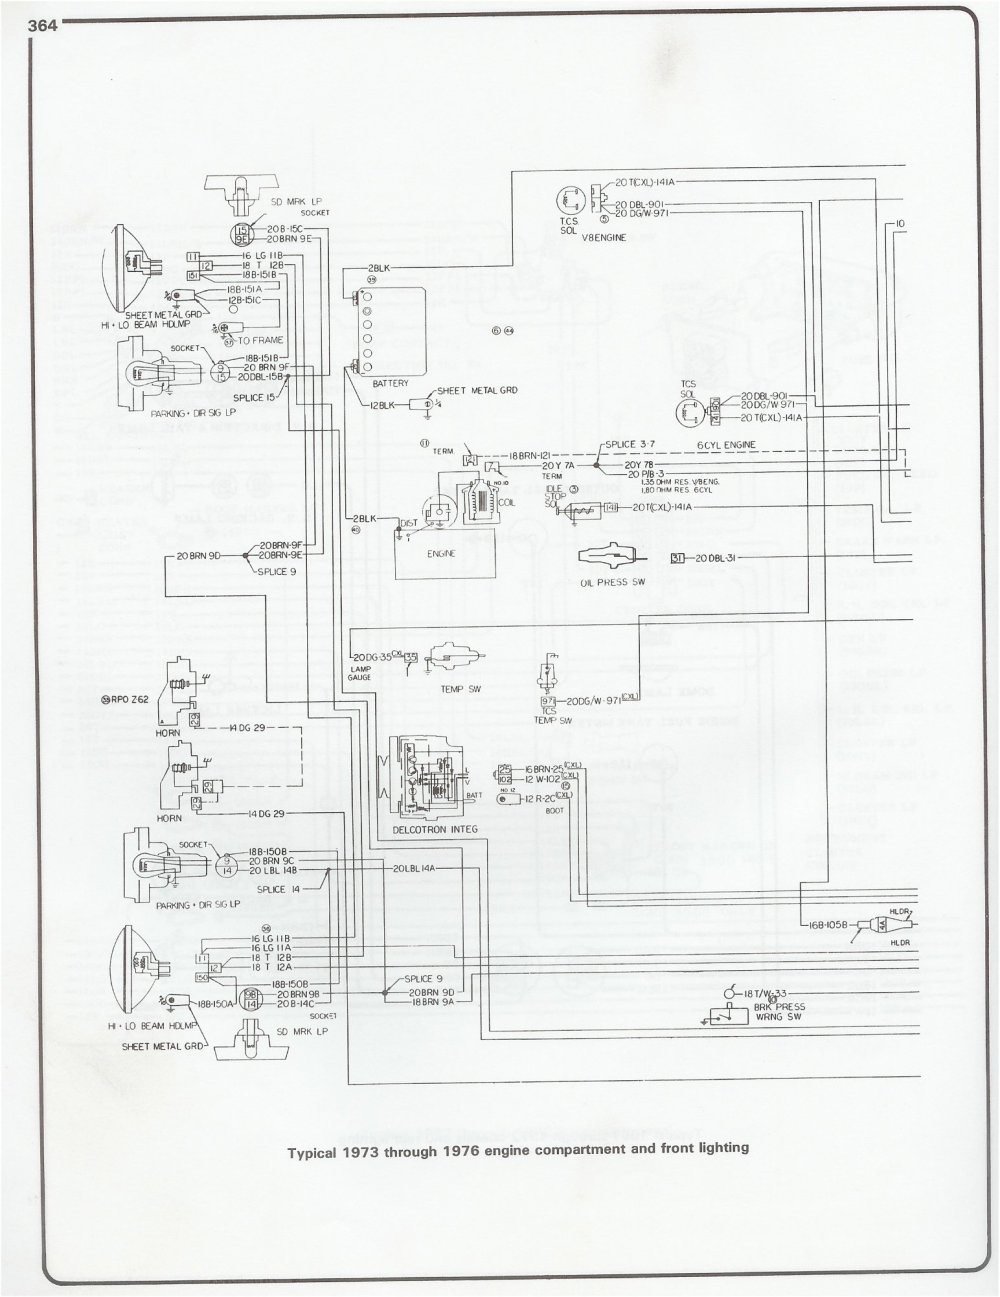 medium resolution of complete 73 87 wiring diagrams 2001 gmc fuse box diagram 1978 gmc c25 fuse box